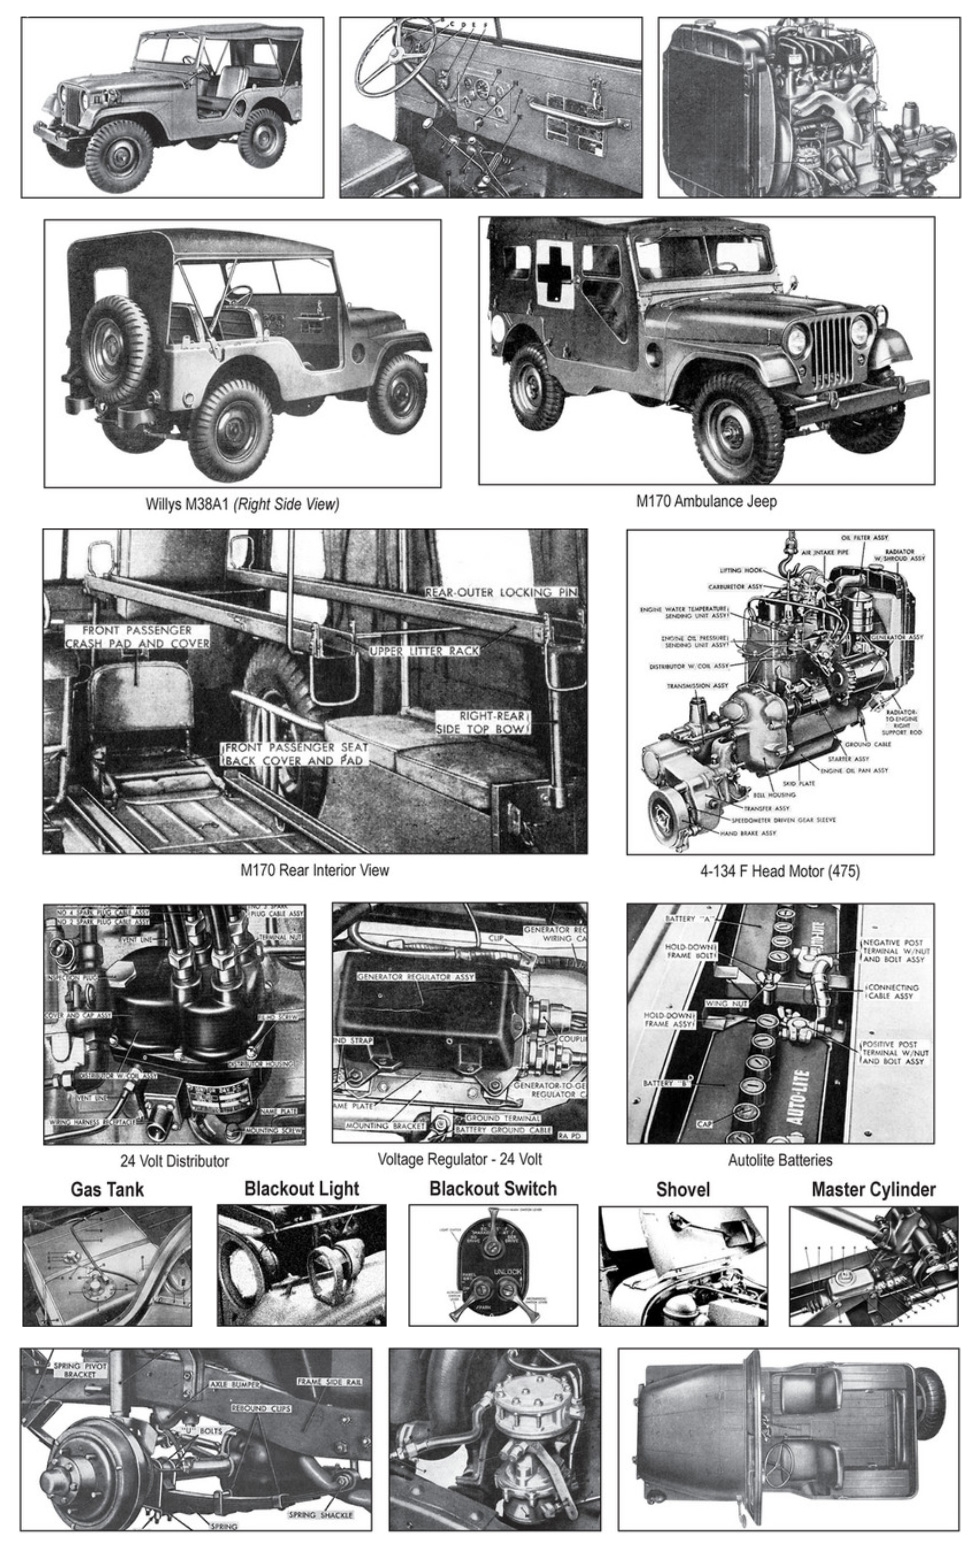 Willys M38A1 Detailed Views